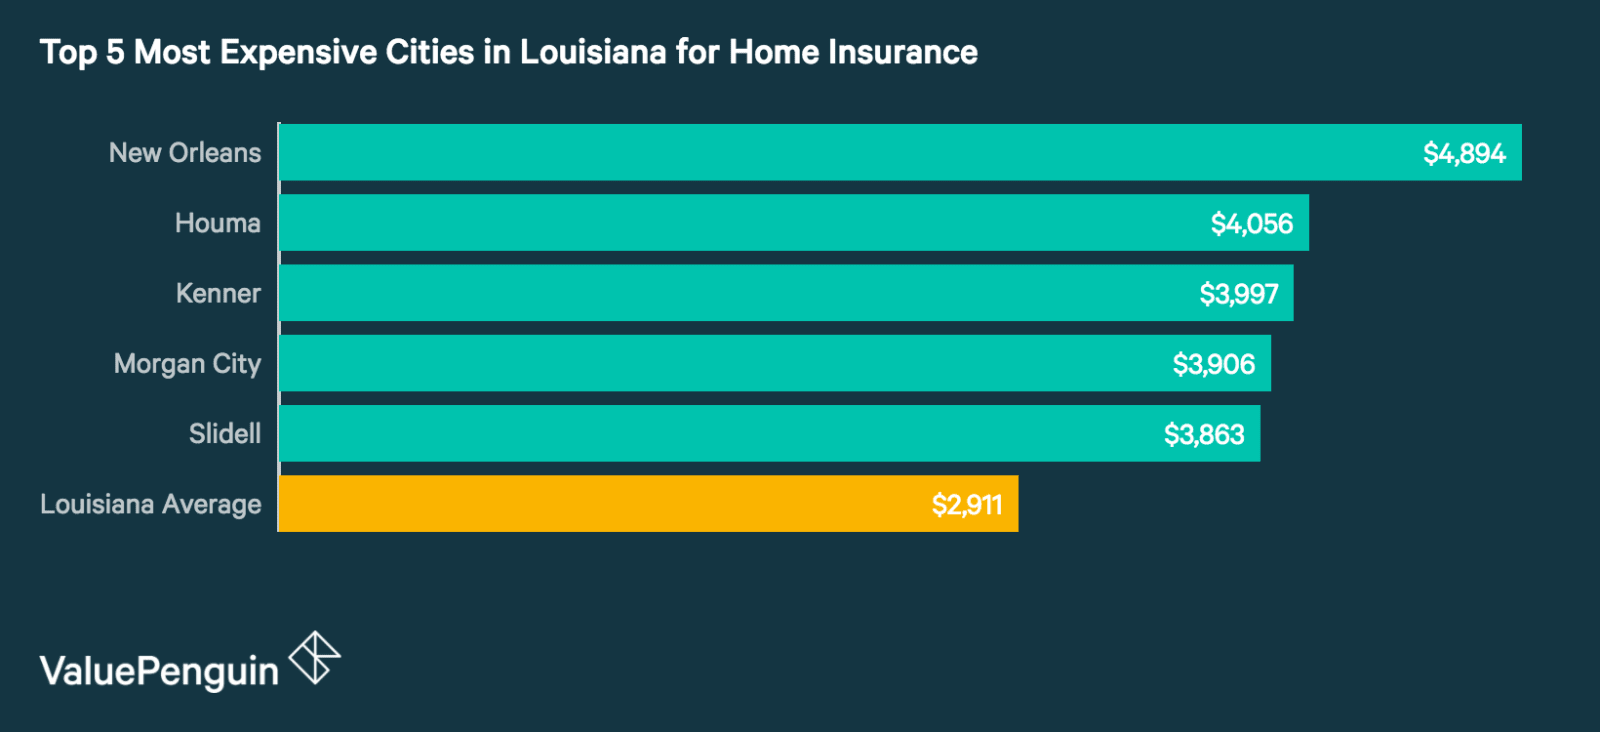 Top 5 Most Expensive Cities in Louisiana for Homeowners Insurance